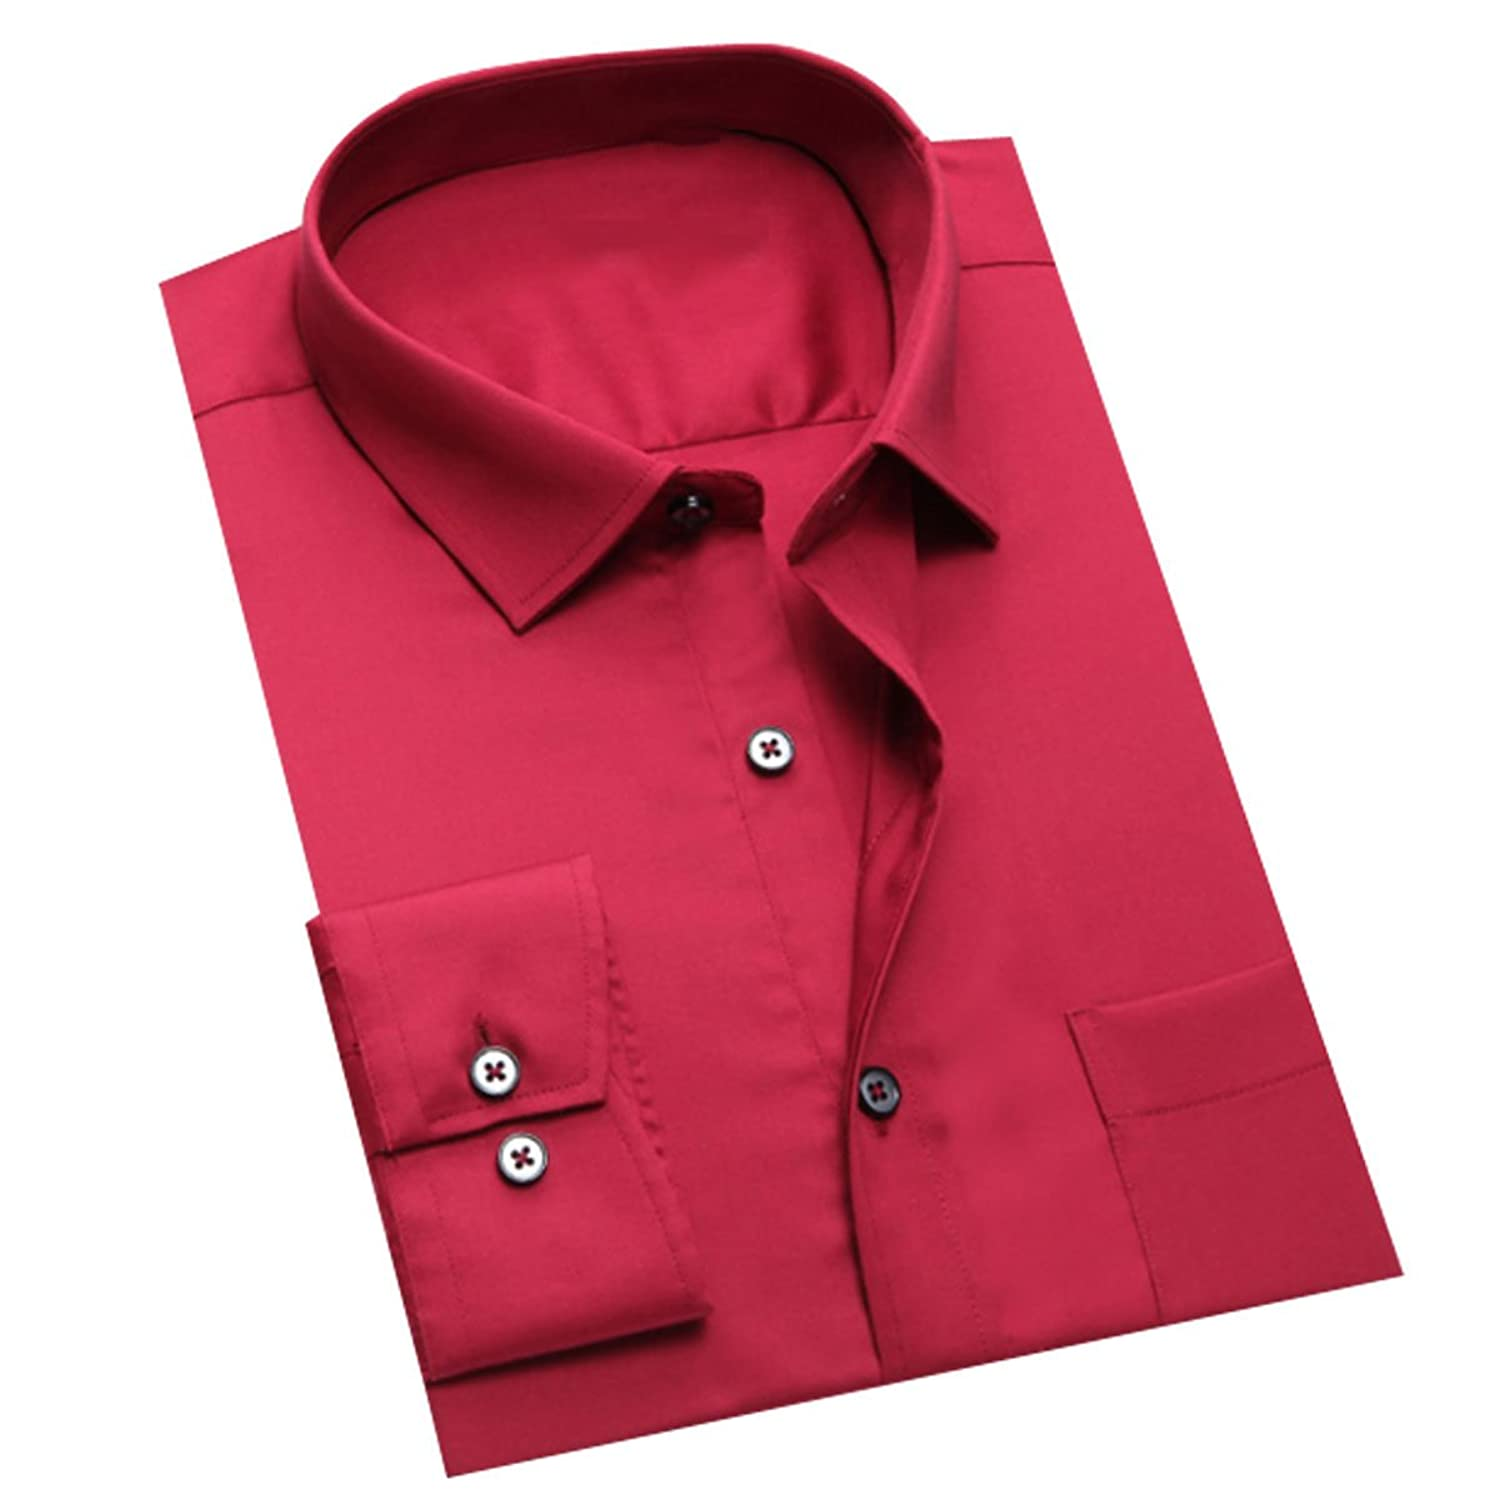 Men 's Long - Sleeved Business Solid Color Business Wear Shirts